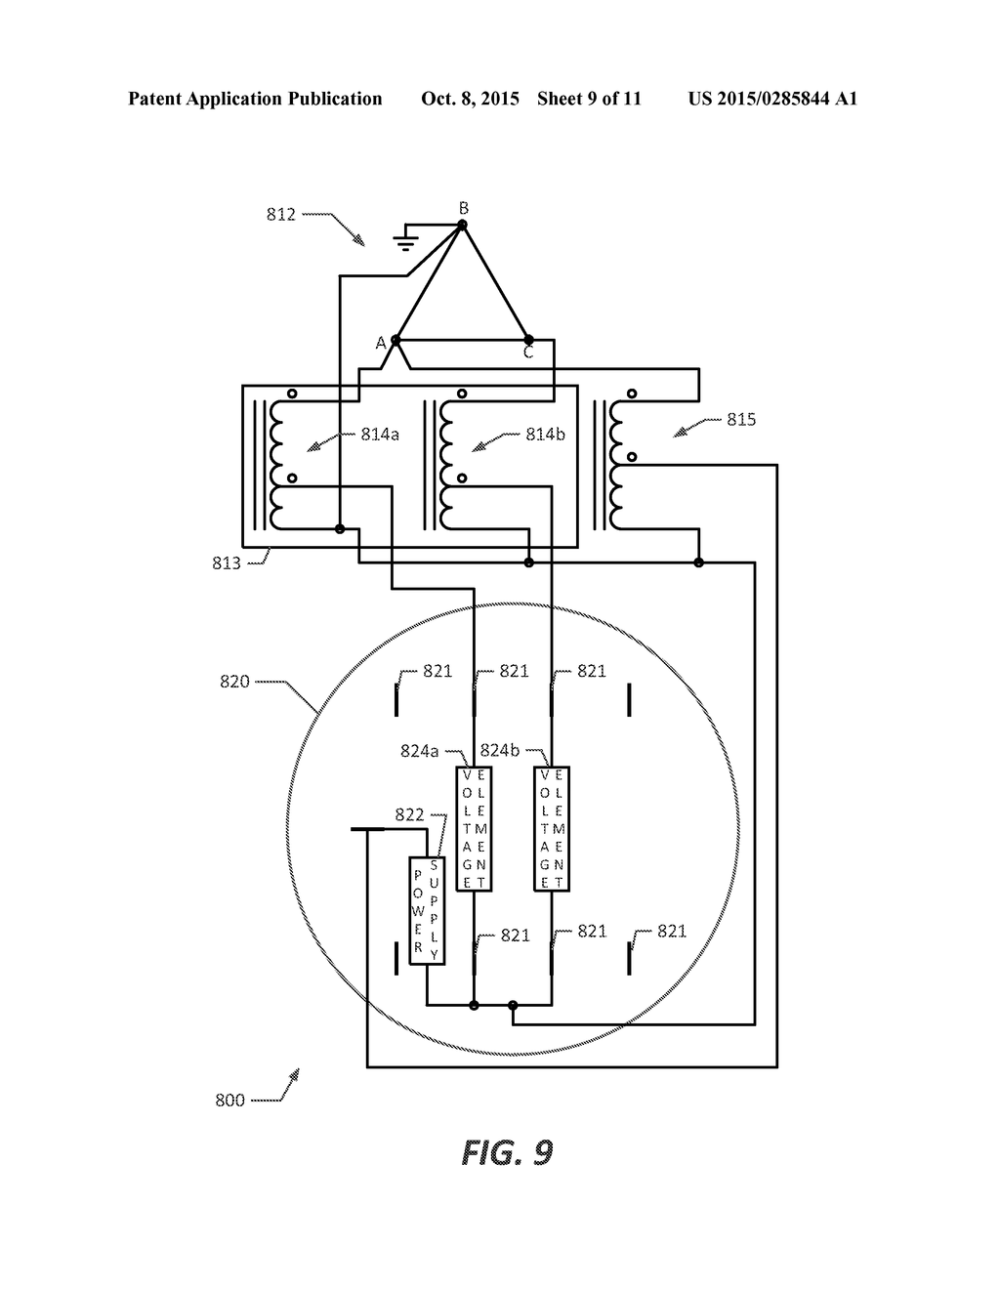 medium resolution of self contained electrical meter arrangement with isolated electrical meter power supply diagram schematic and image 10